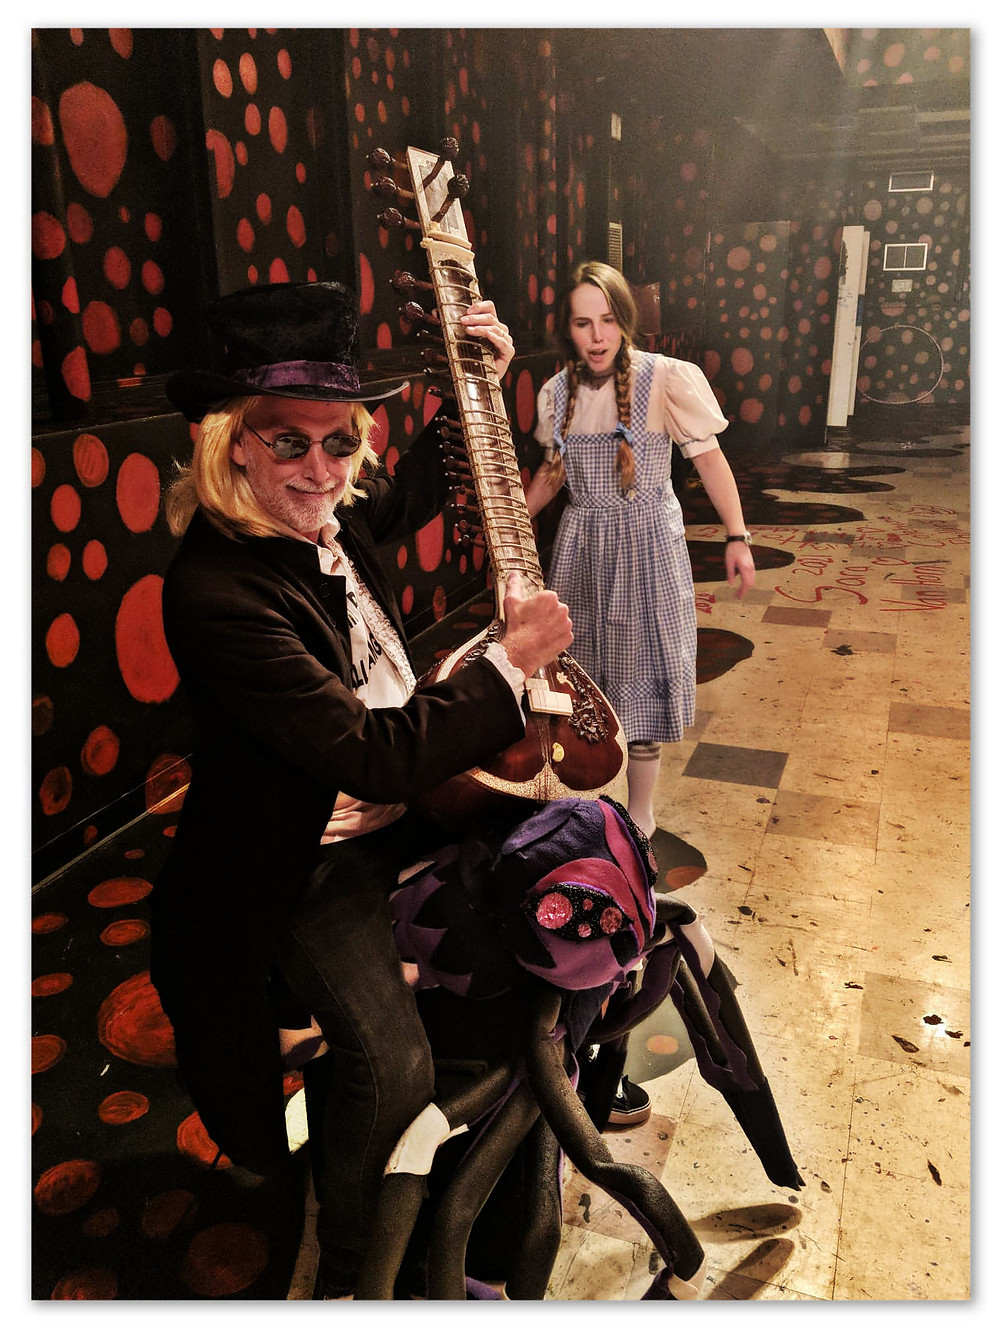 Uncle Dave as Tom Petty.  Anna Nelson as Dorothy.  Oct 15, 2016